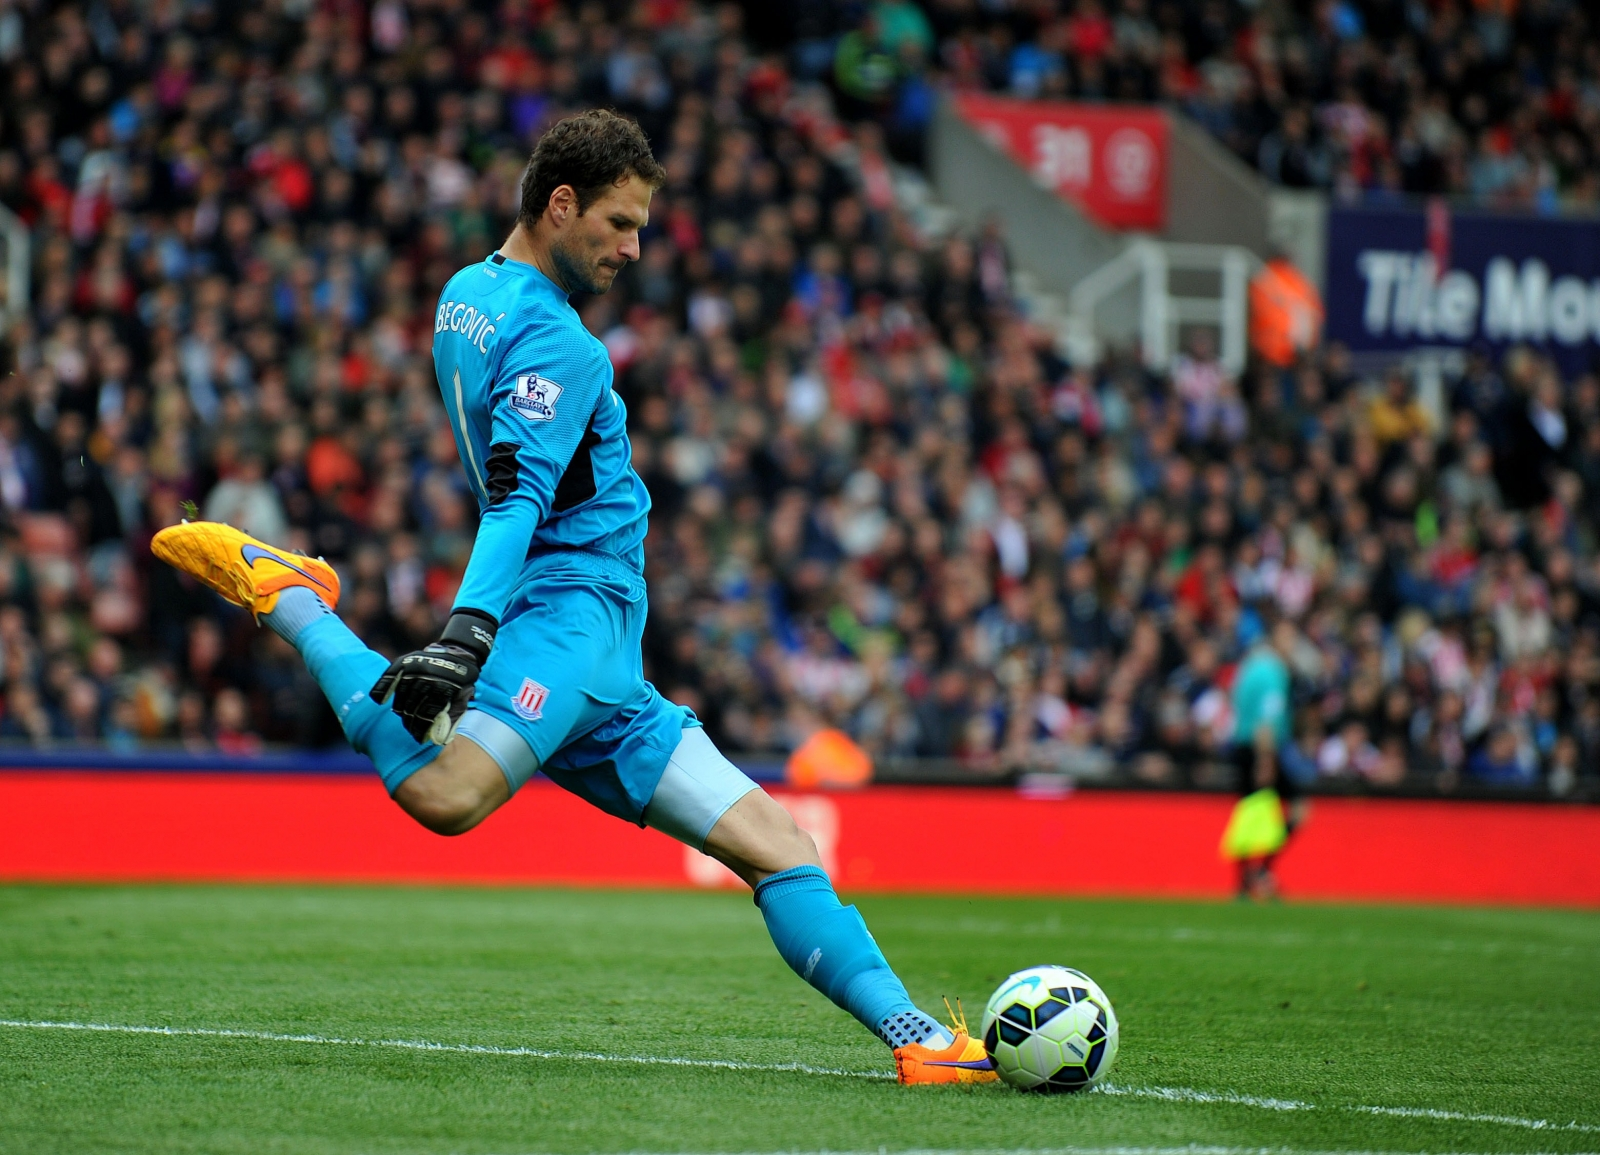 Asmir Begovic will leave Stoke City if he rejects new contract